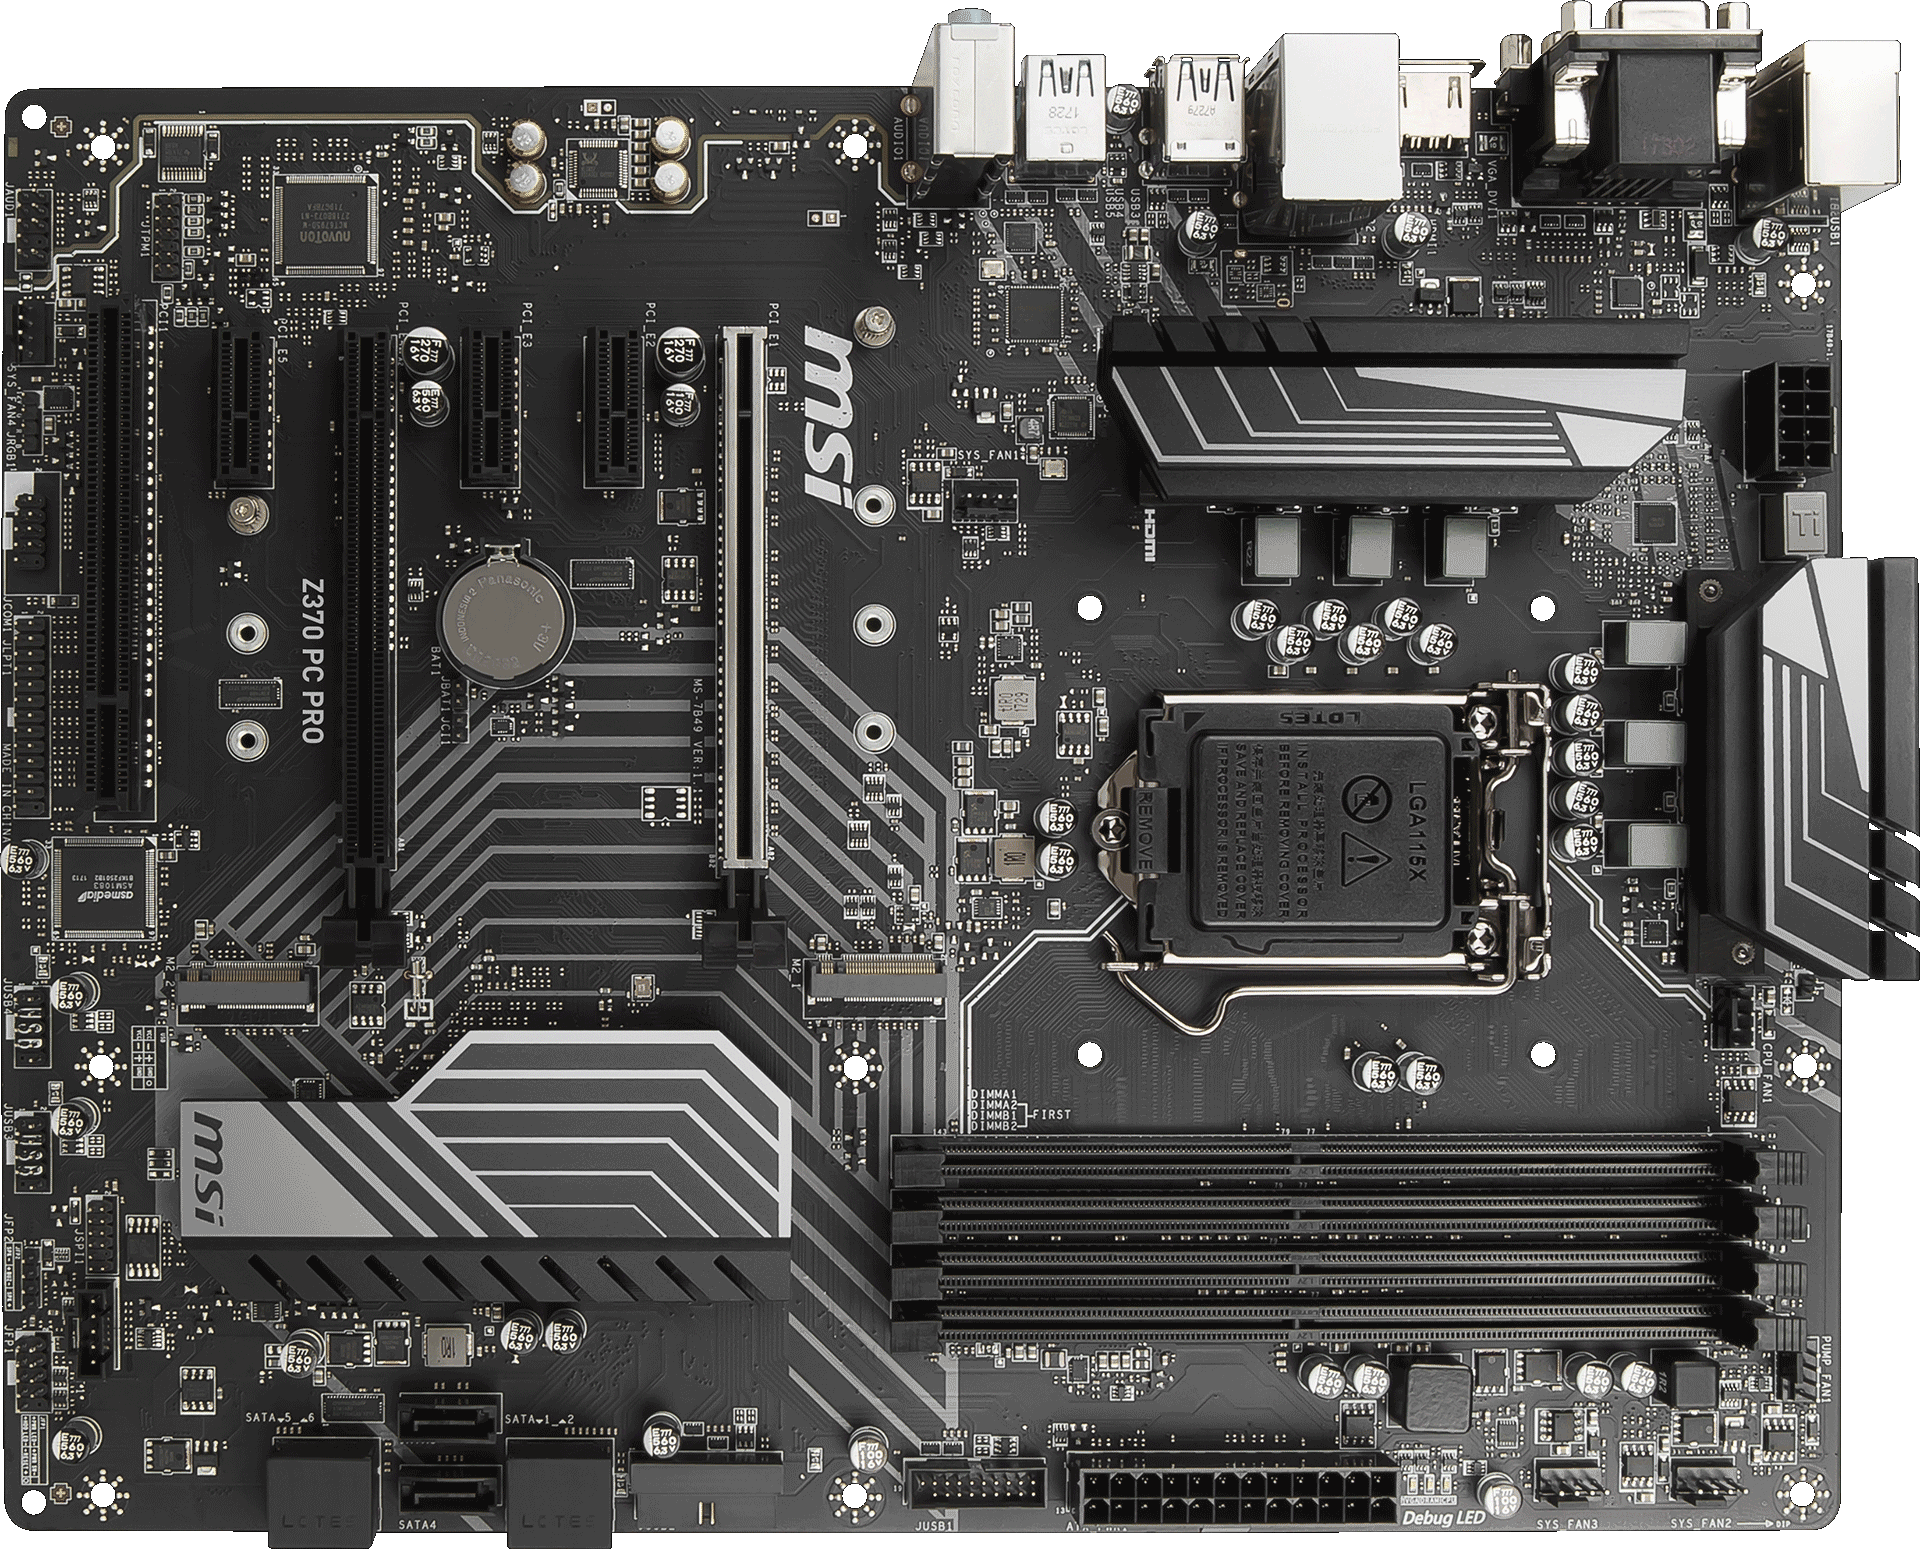 msi motherboard usb drivers for windows 7